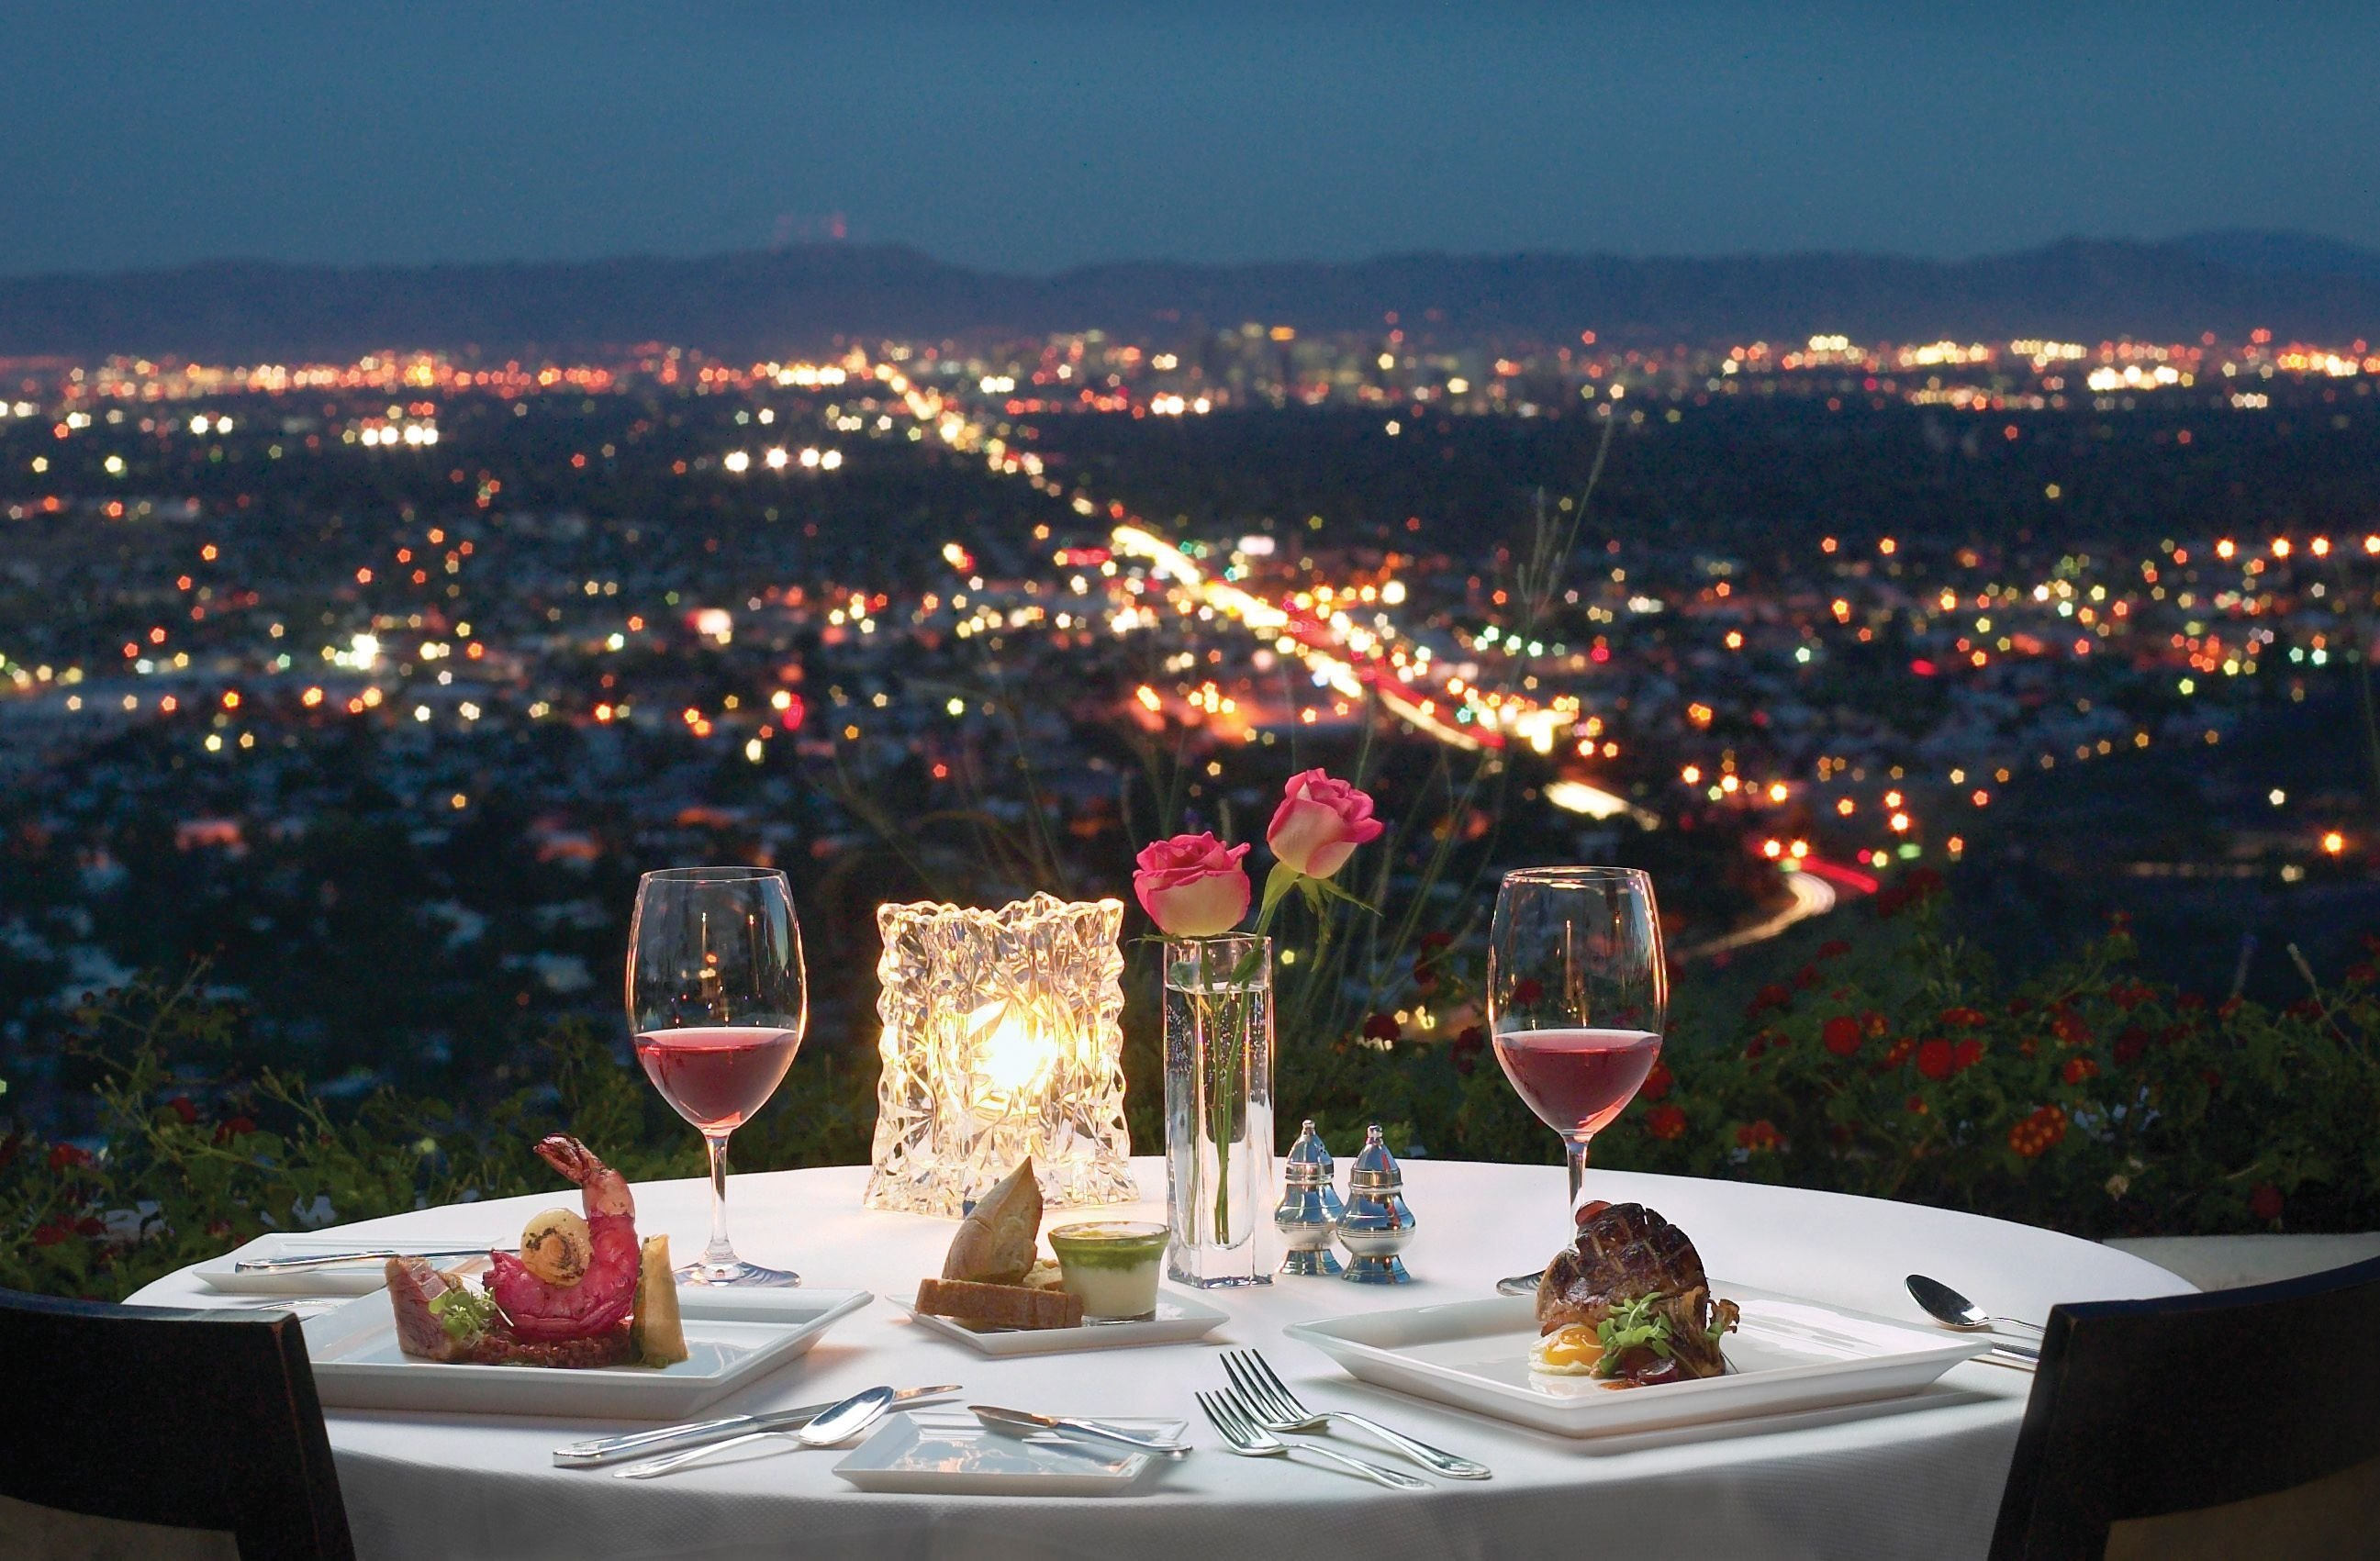 10 Amazing Romantic Date Ideas In Phoenix different pointe of view is a distinct and unforgettable phoenix 2020